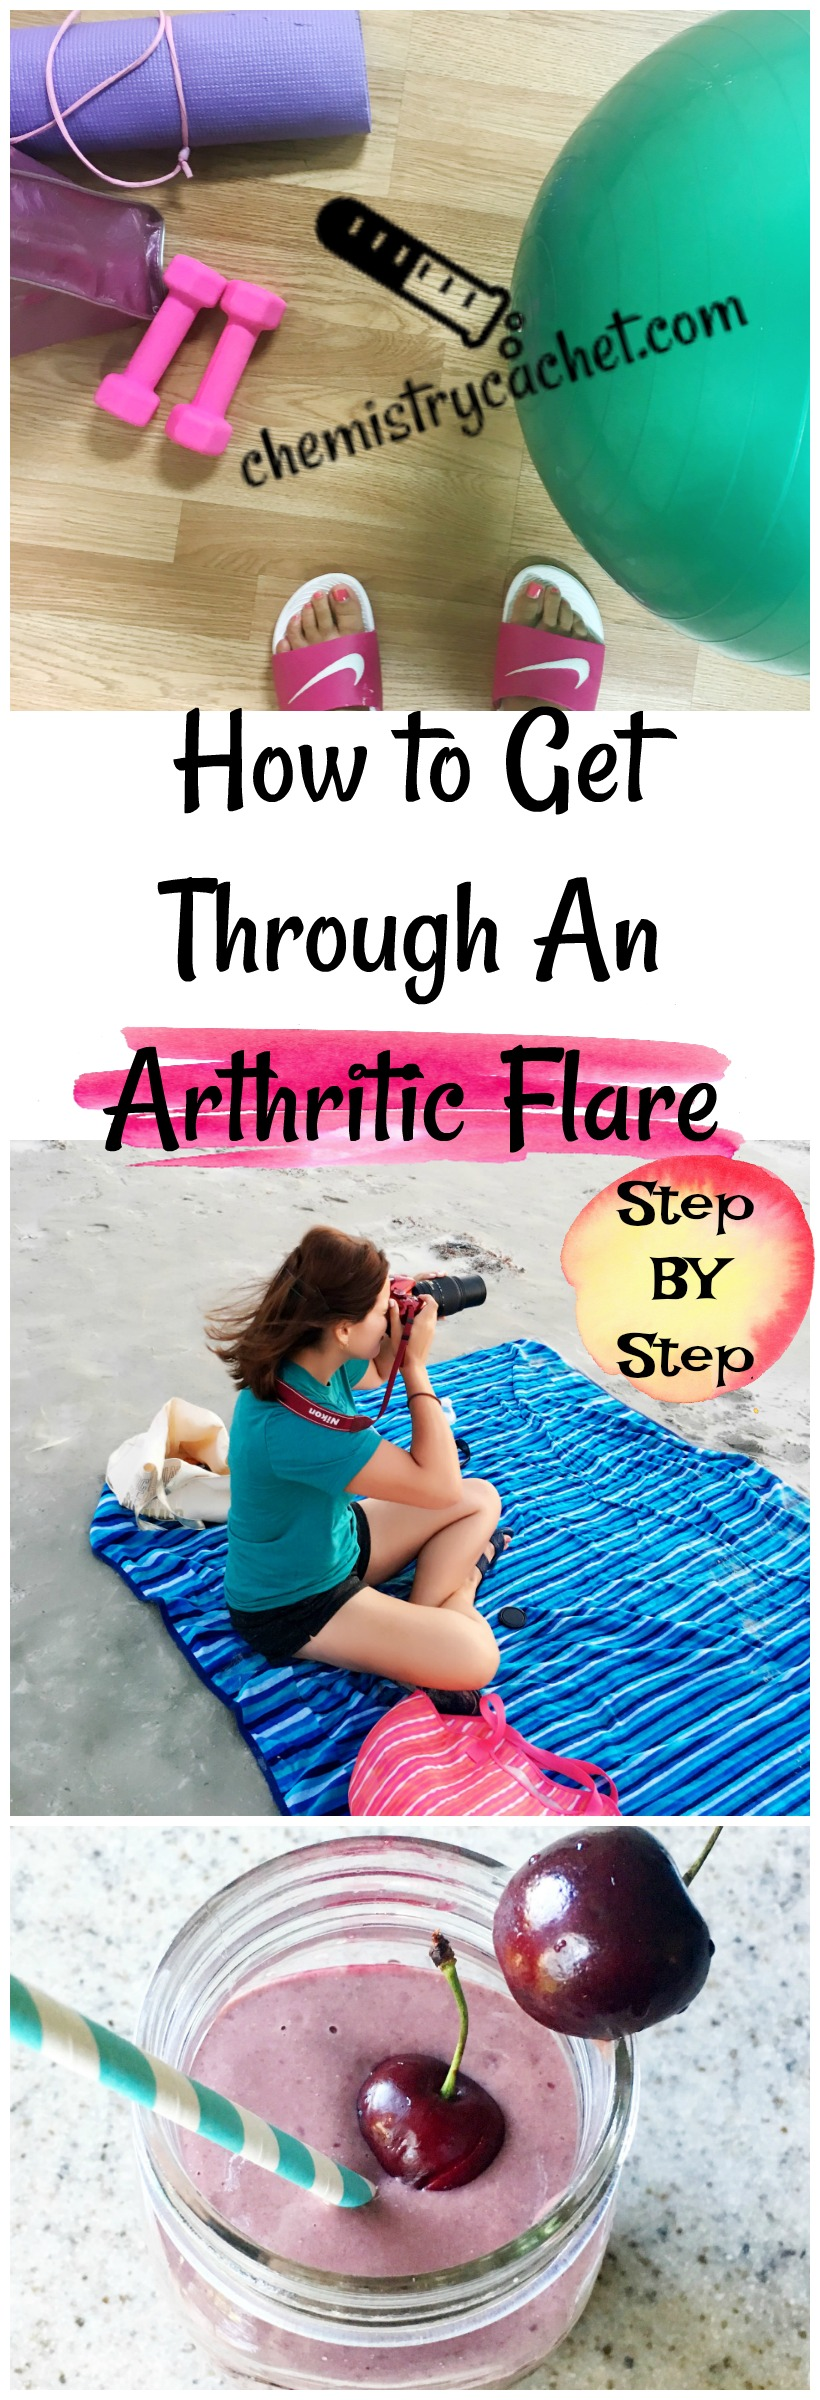 How to get through an arthritic flare step by step from a 20 year veteran of rheumatoid arthritis on chemistrycachet.com